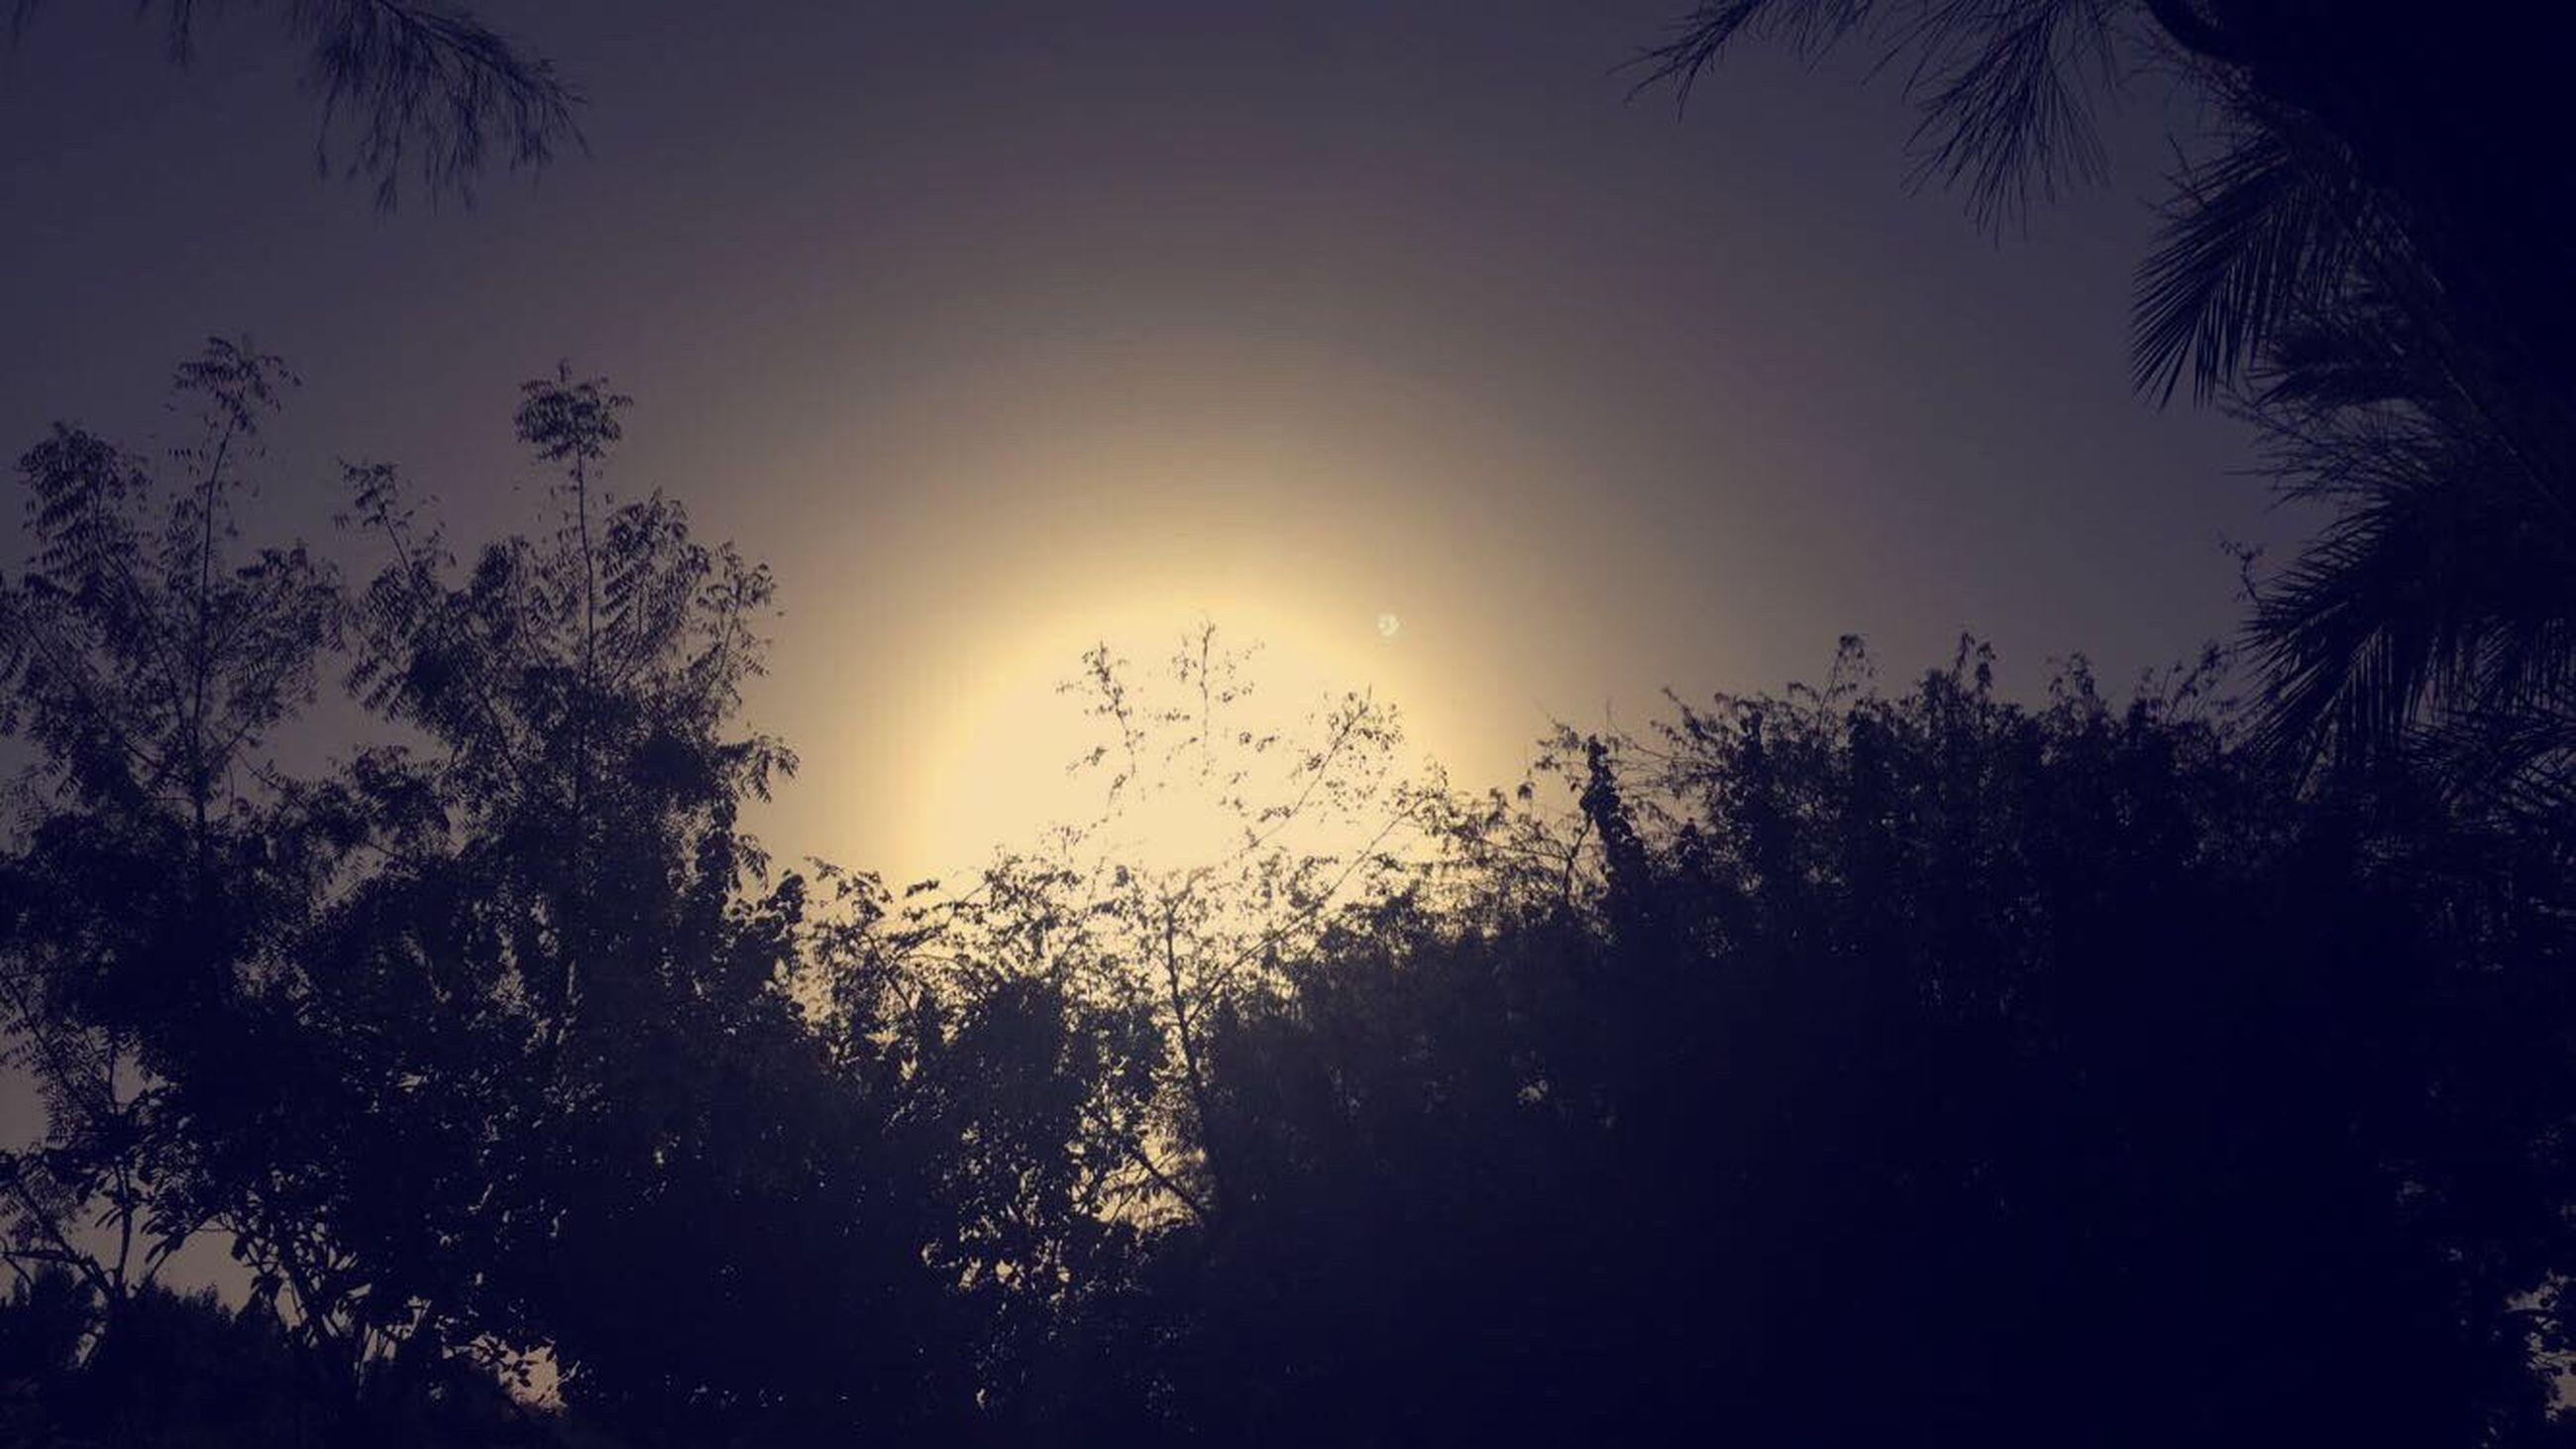 sunset, nature, tree, silhouette, sky, sun, beauty in nature, tranquility, no people, backgrounds, outdoors, day